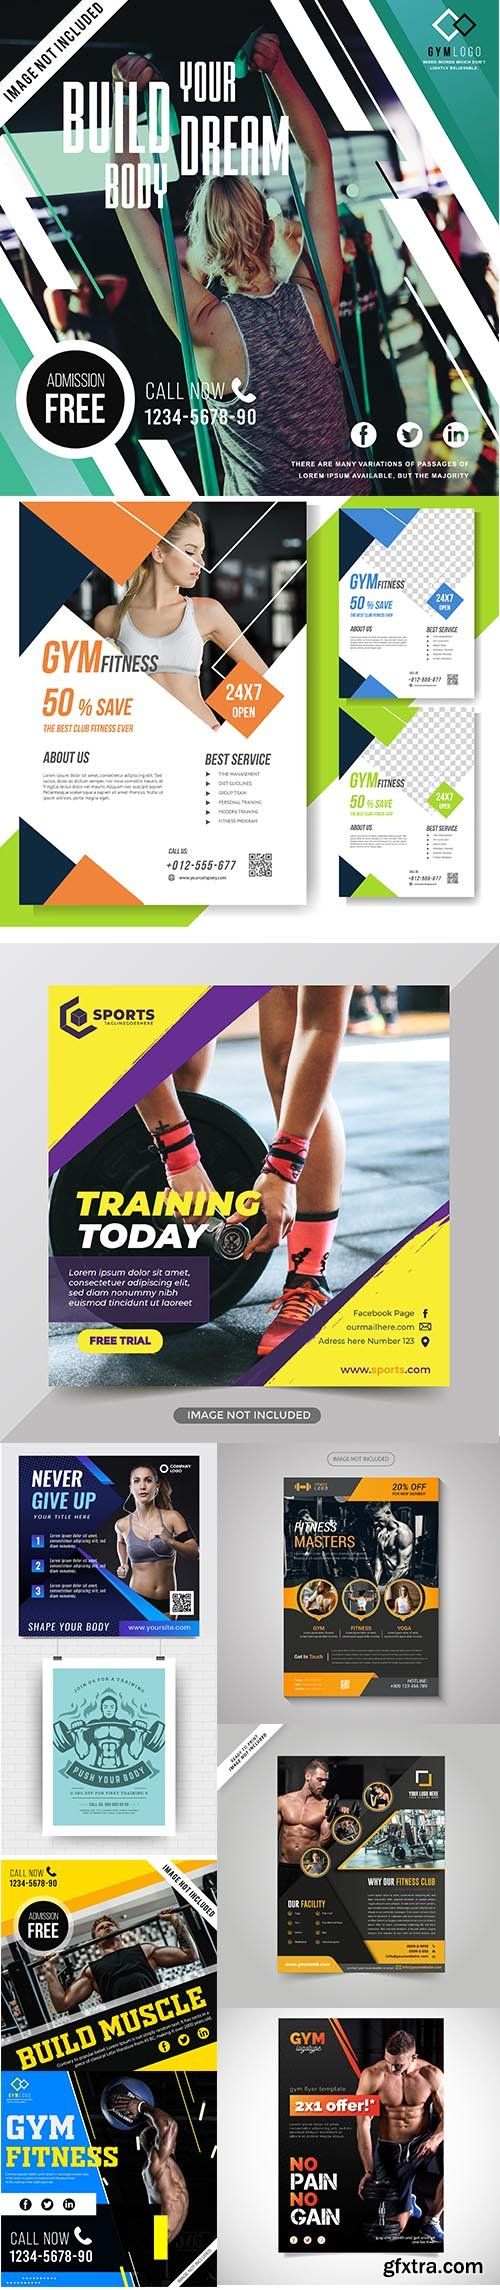 Gym and fitness flyer template collection Vol 6